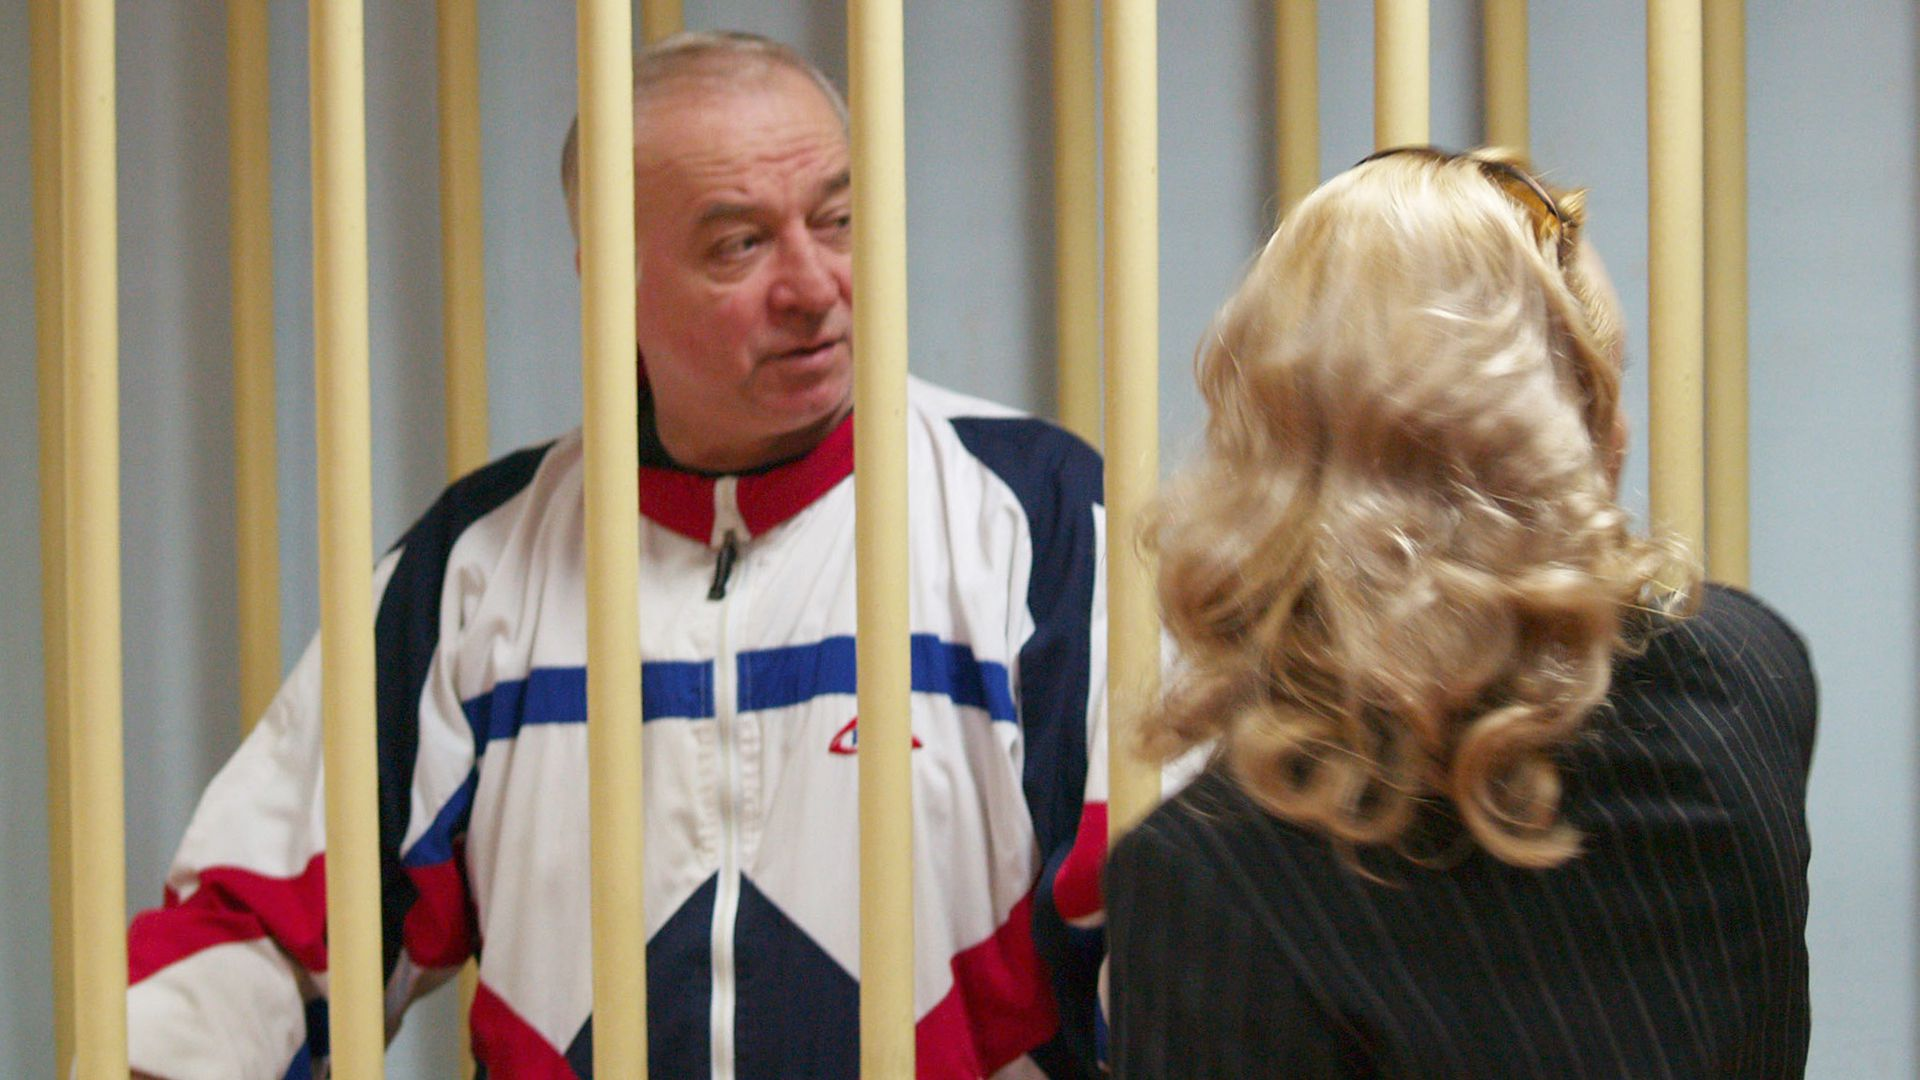 Sergei Skripal at Moscow district court stands behind bars